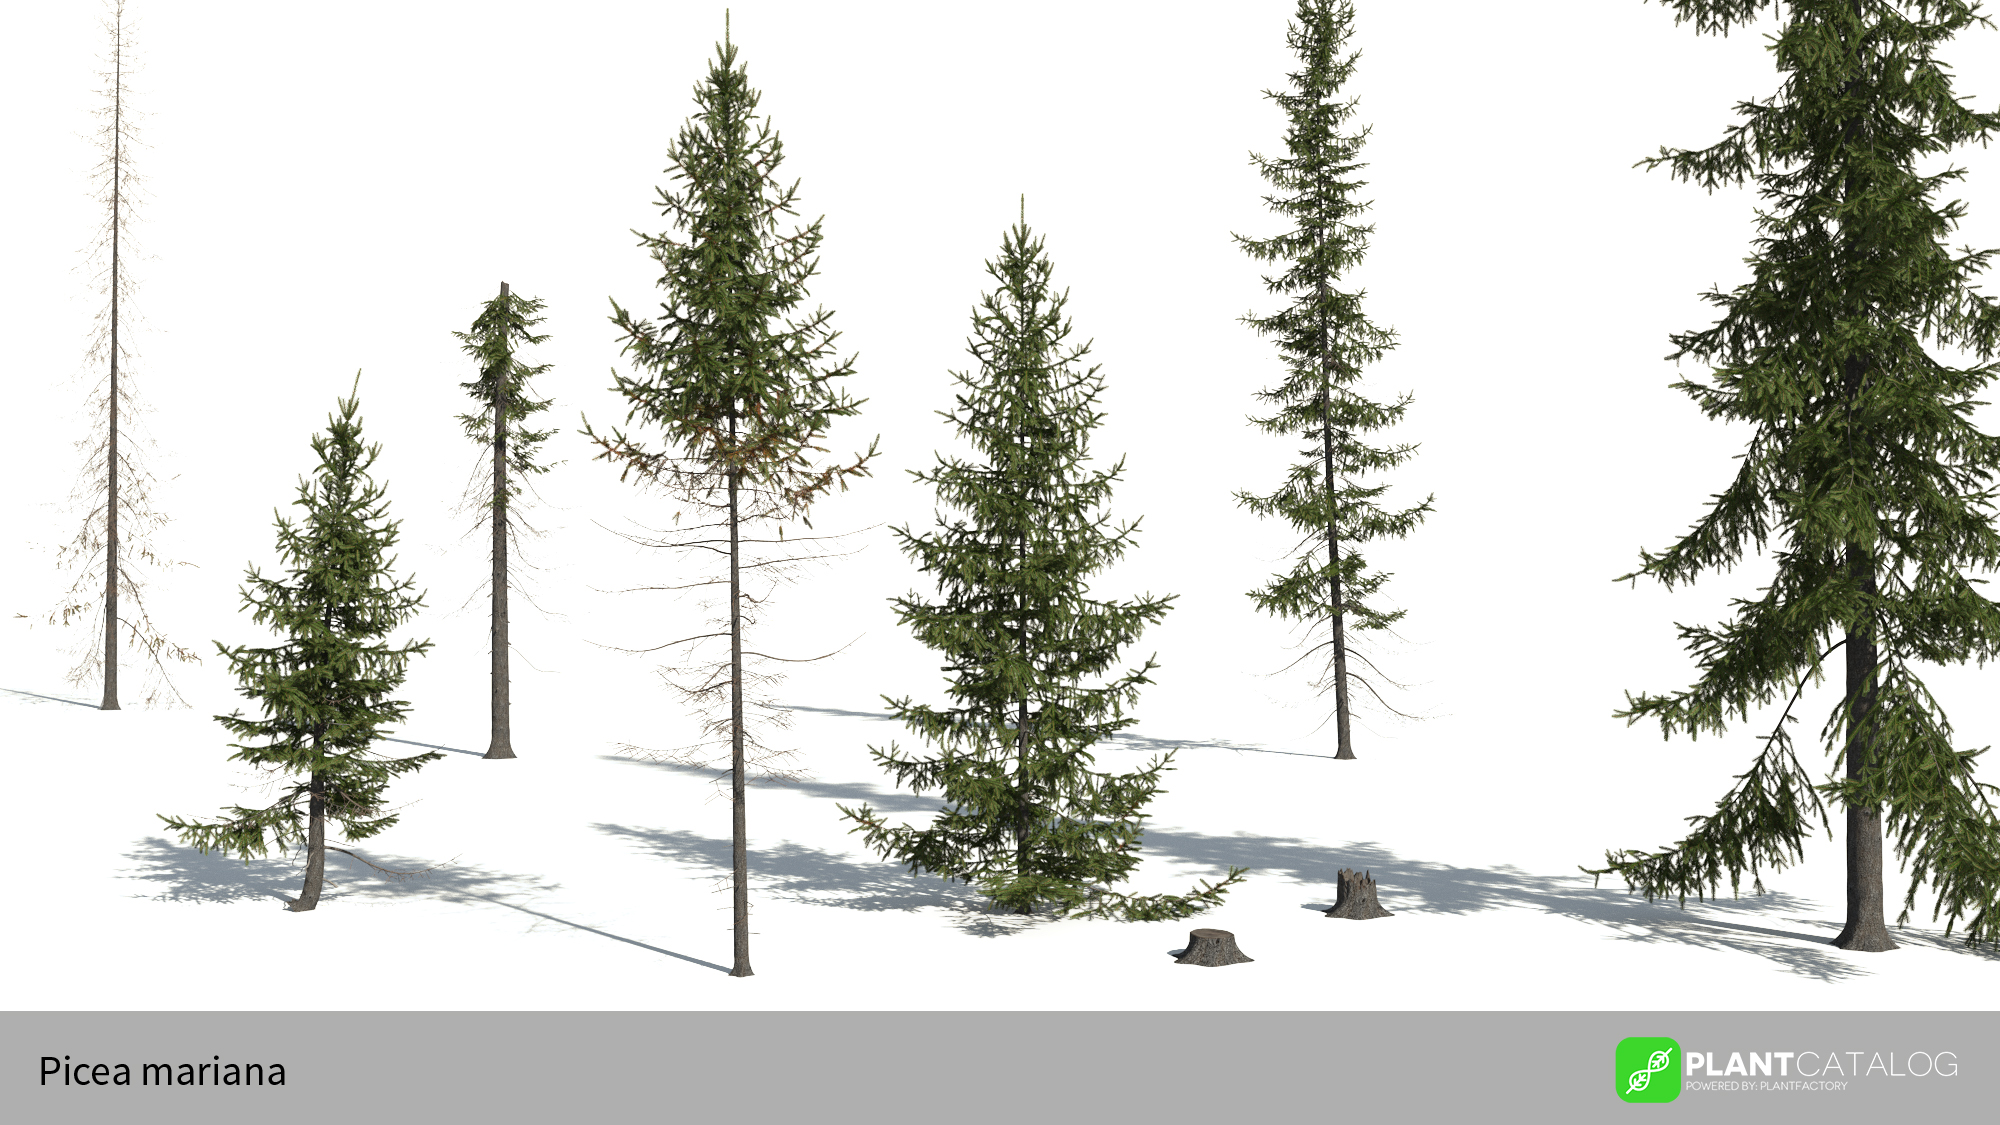 3D model of the Black spruce - Picea mariana - from the PlantCatalog, rendered in VUE